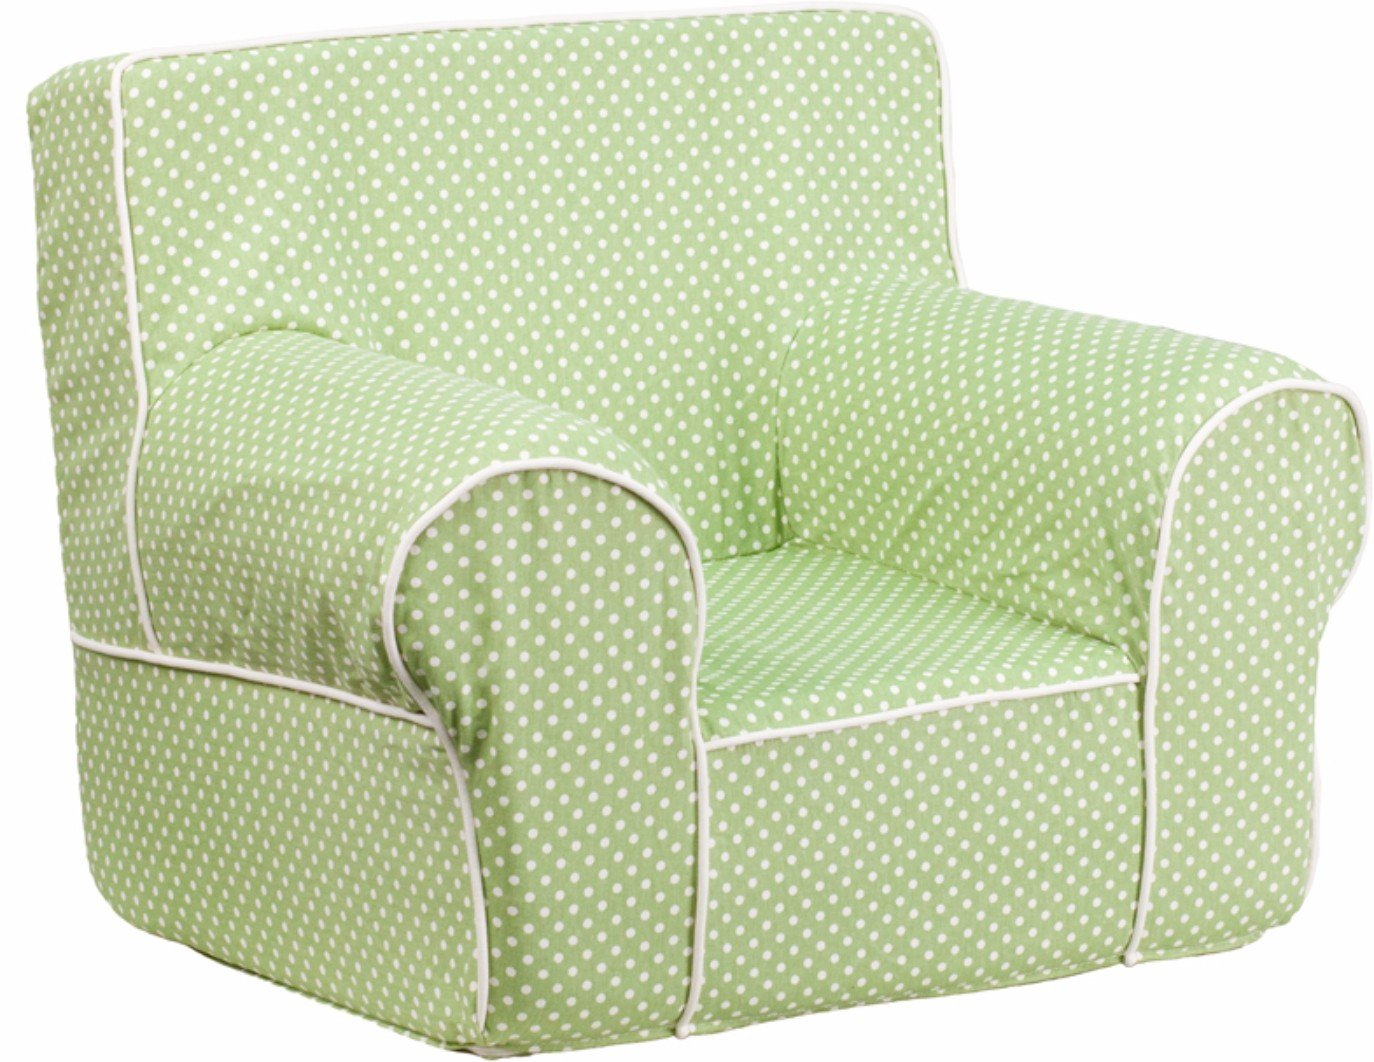 Winston Direct Kids Series Small Polka Dot Foam Chair with White Piping - Sage Green